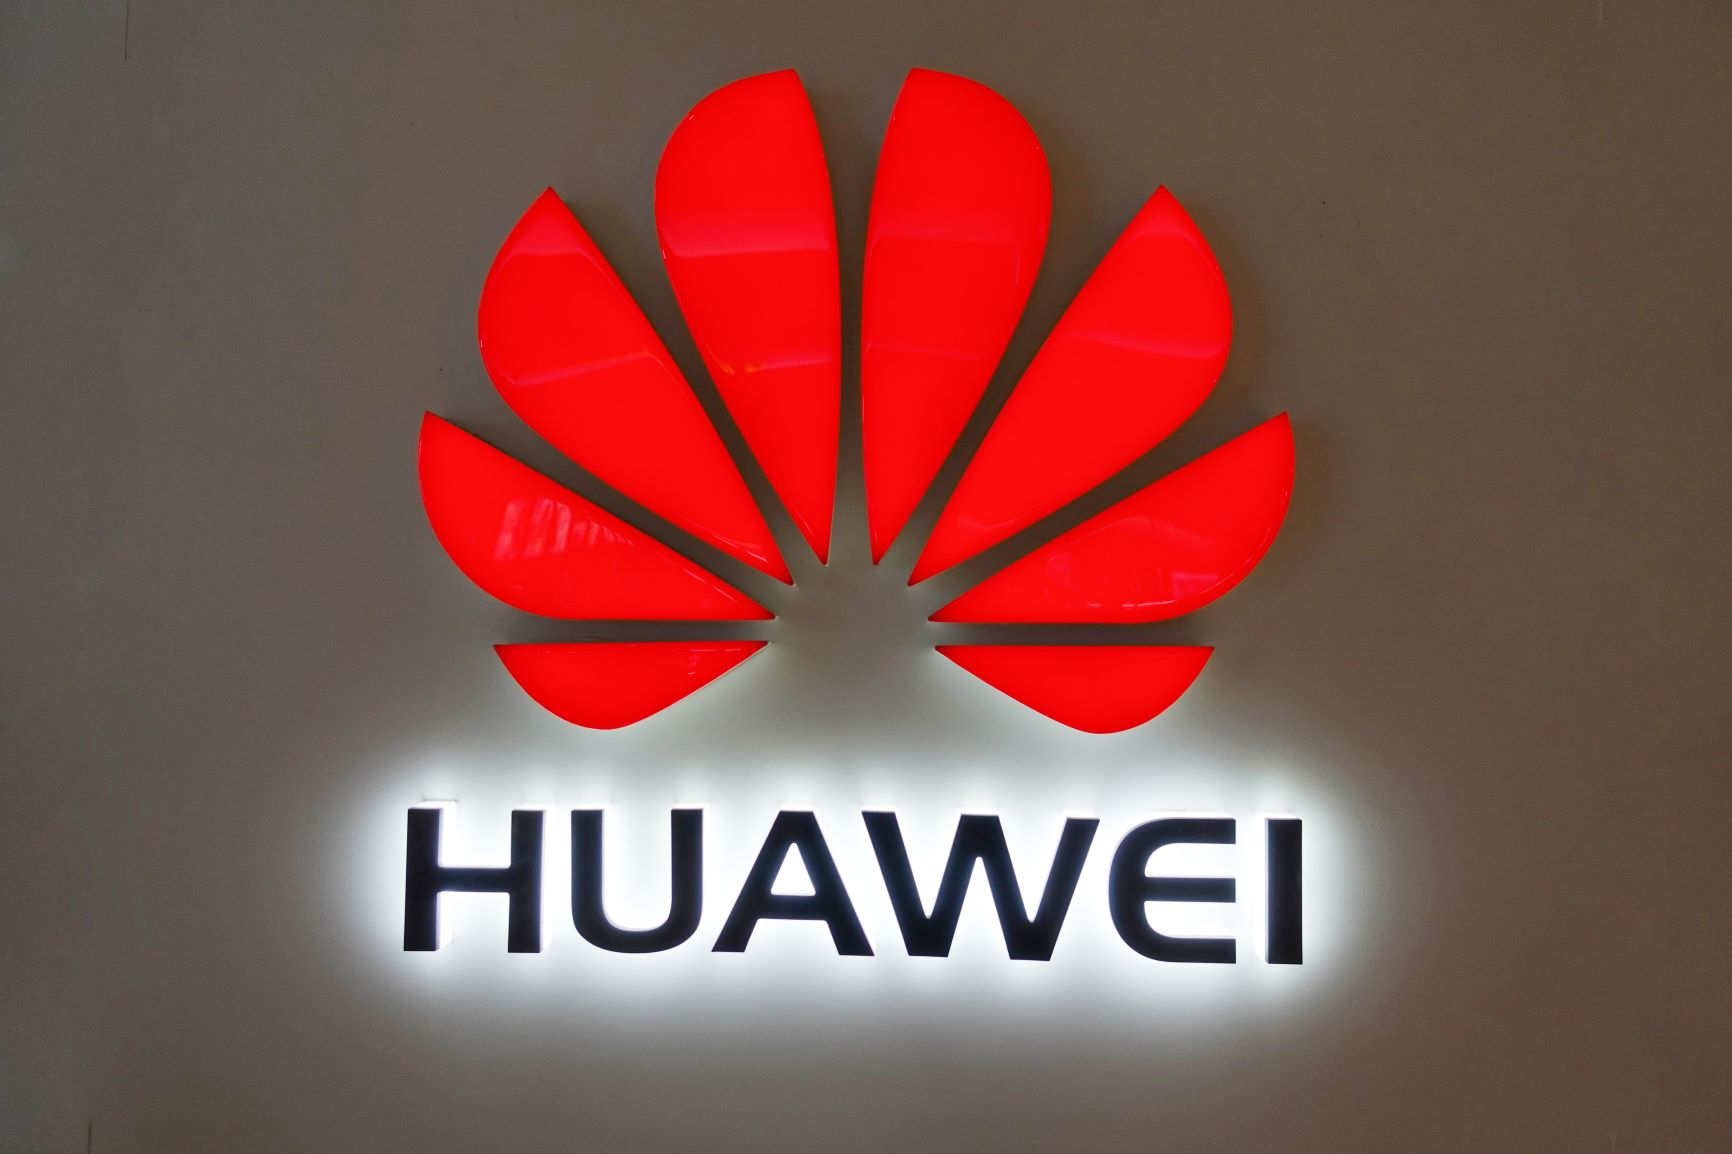 Huawei could lose out on 5G in Europe, but outright ban in Africa unlikely